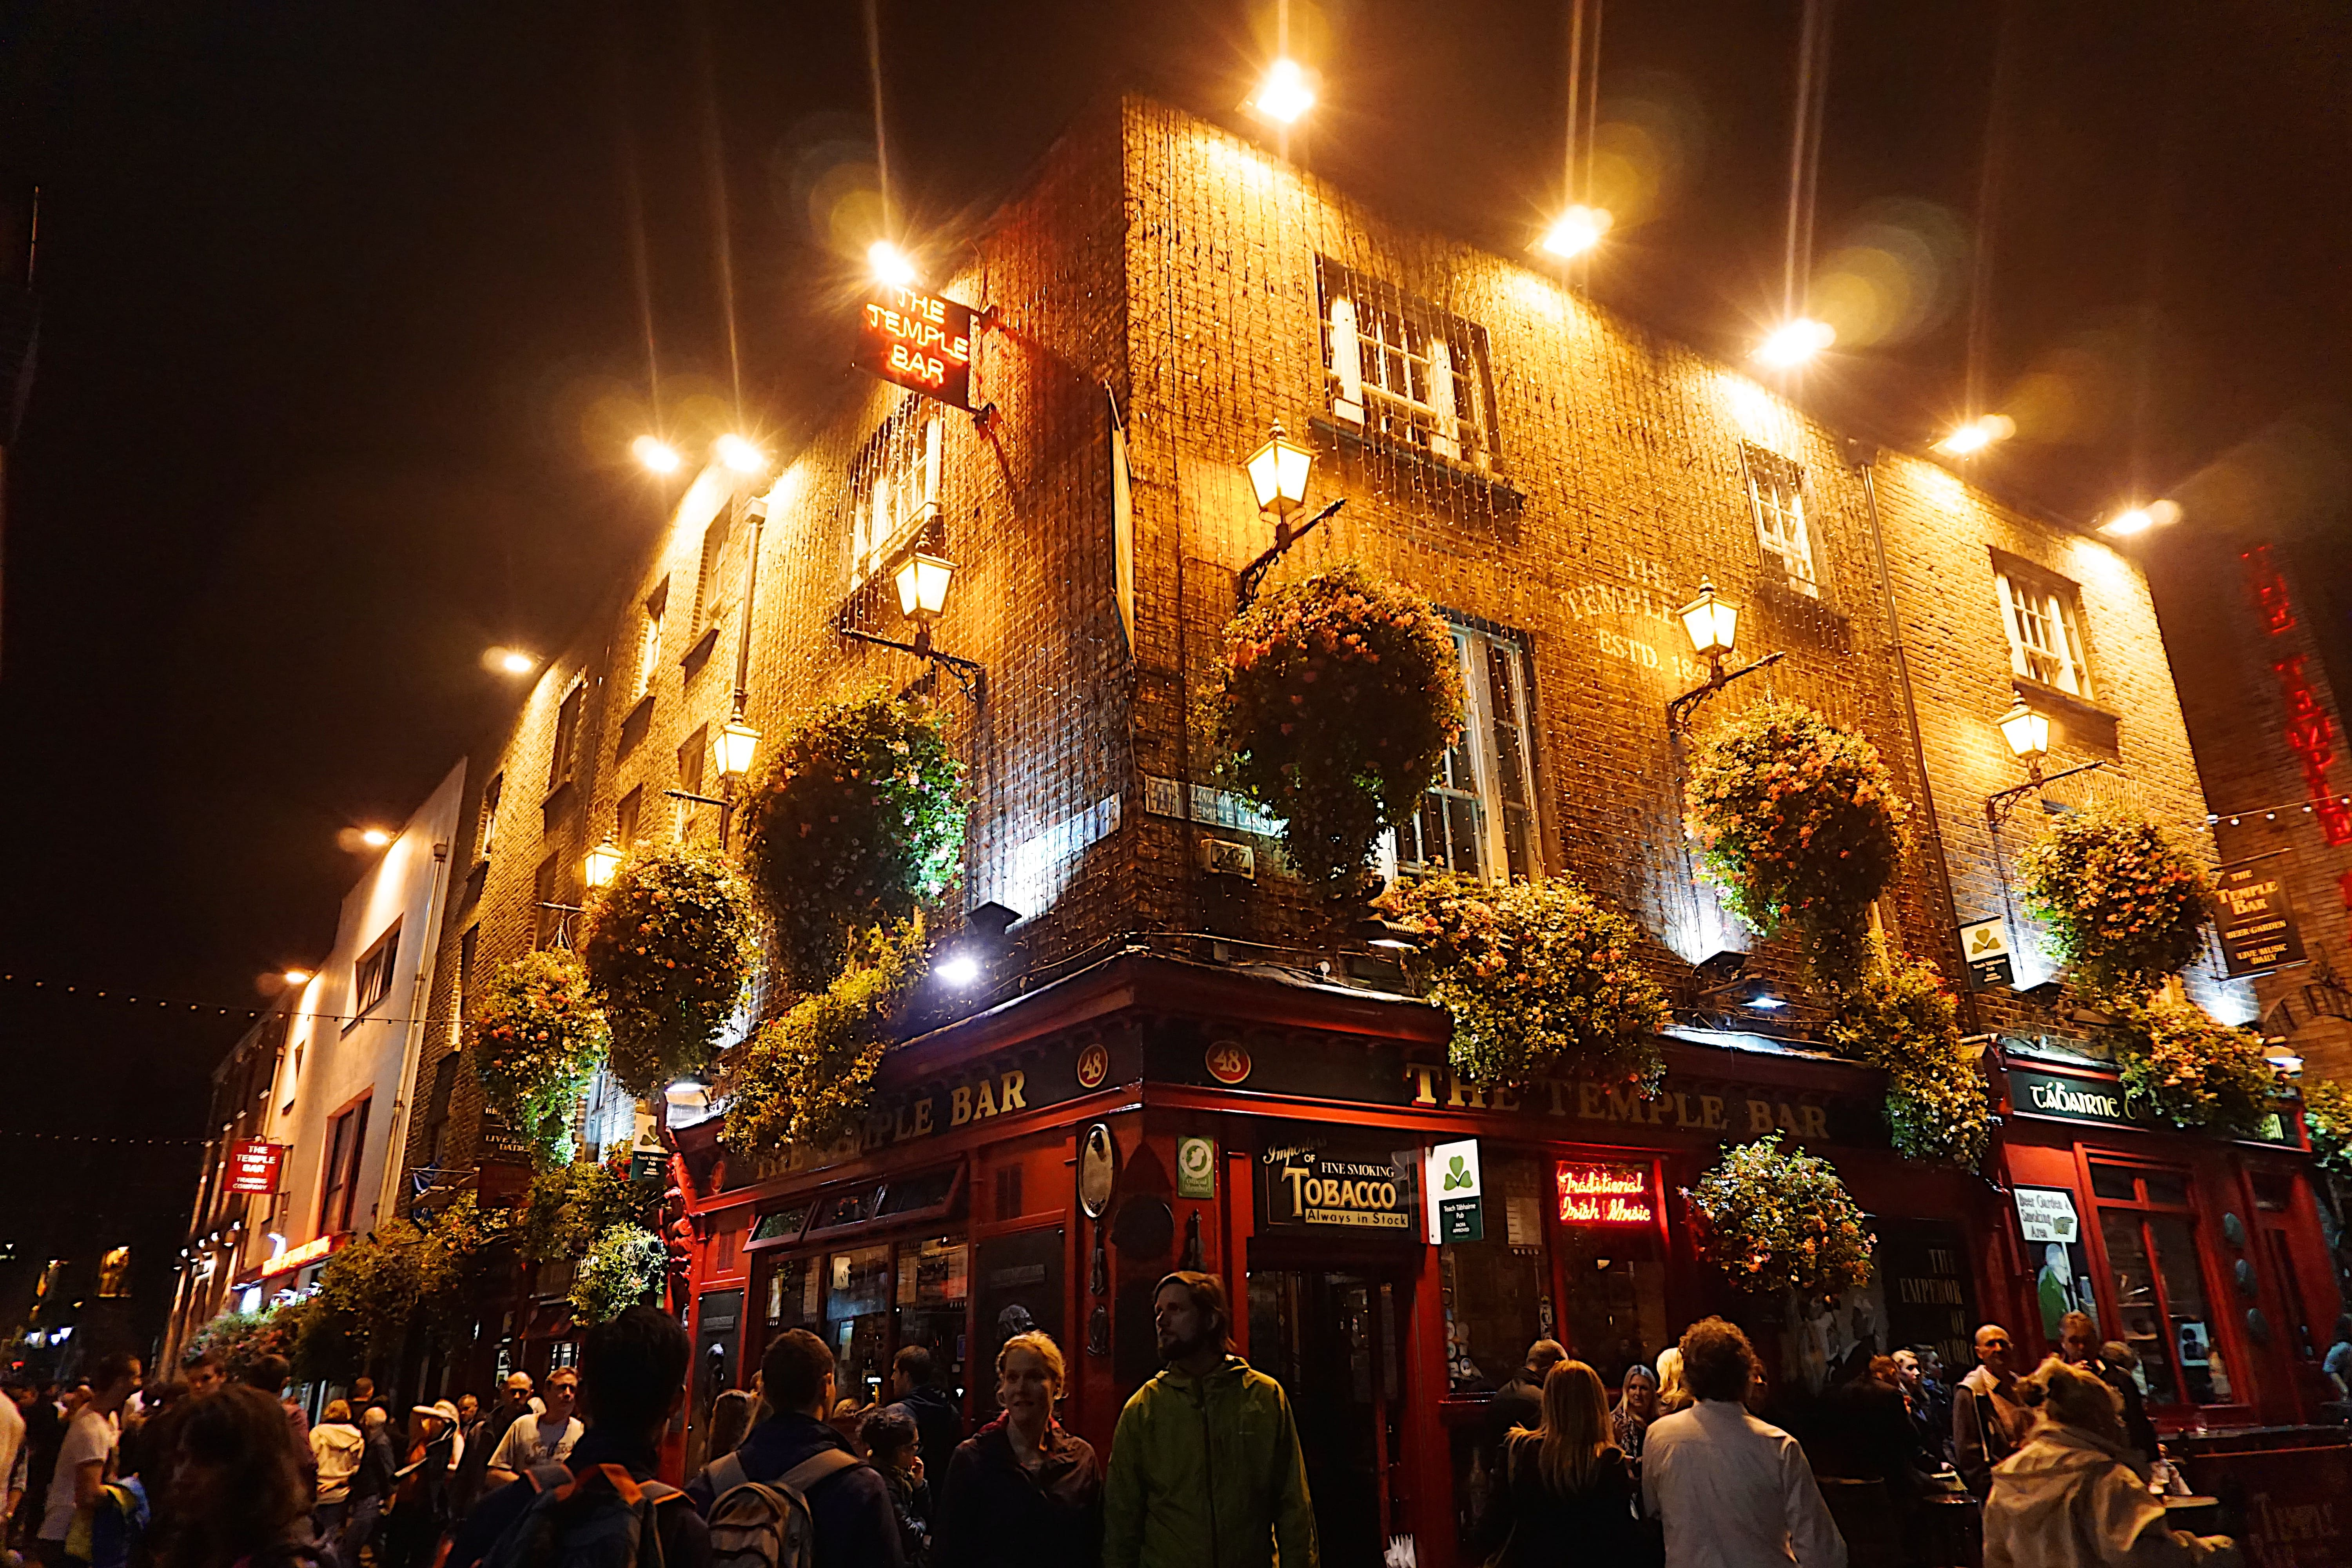 Visiting Temple Bar in Dublin is one of the best things to do in Ireland